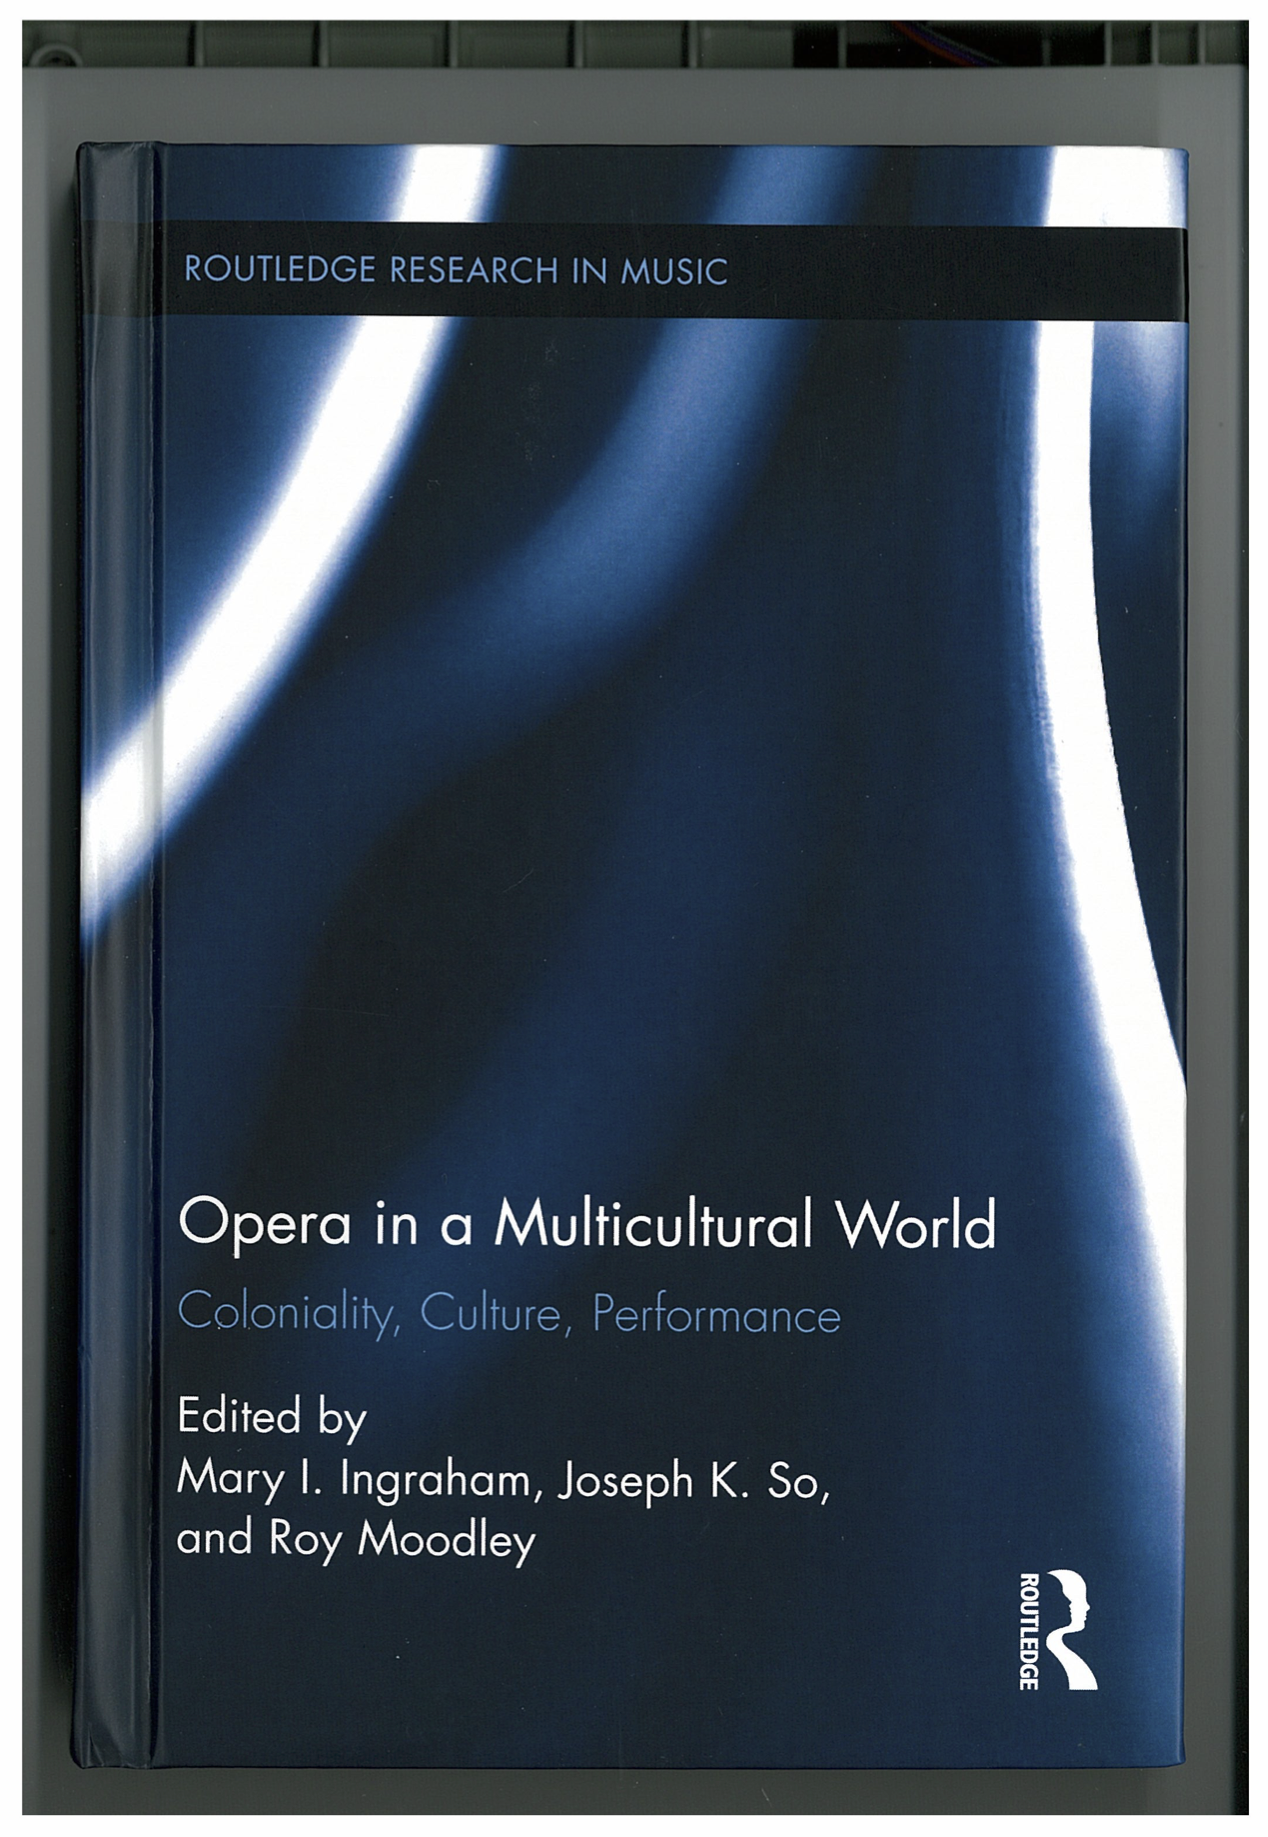 Opera in a Multicultural World: Coloniality, culture, performance. Eds. M. Ingraham, J. So & R. Moodley.